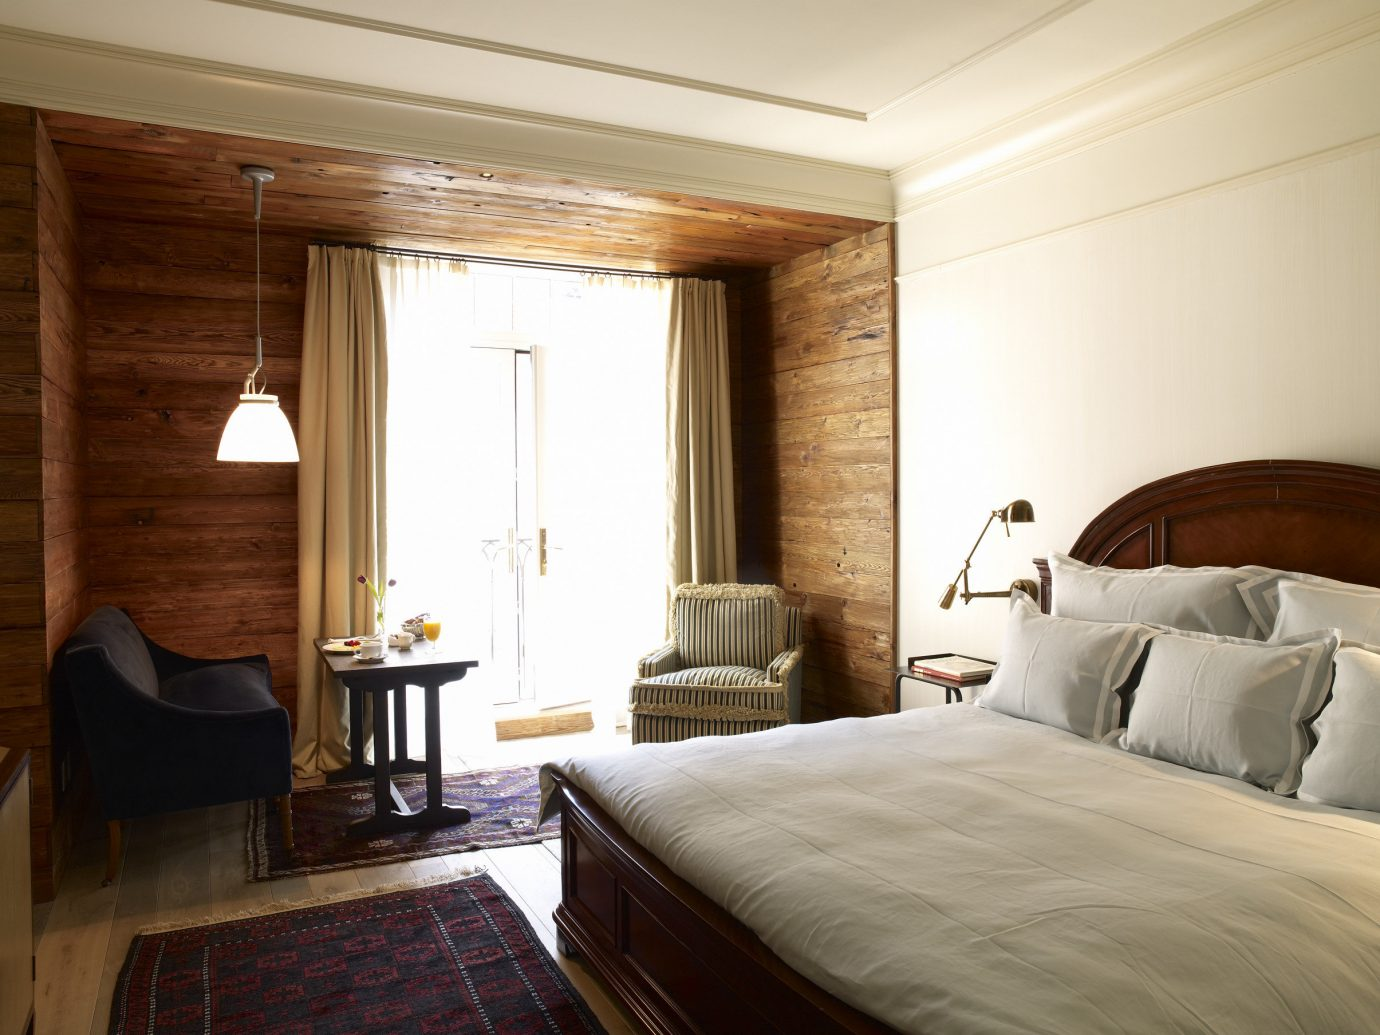 Hotels Jetsetter Guides Travel Tips Trip Ideas indoor bed wall room floor hotel ceiling Suite Bedroom interior design real estate window wood bed frame interior designer wood flooring comfort